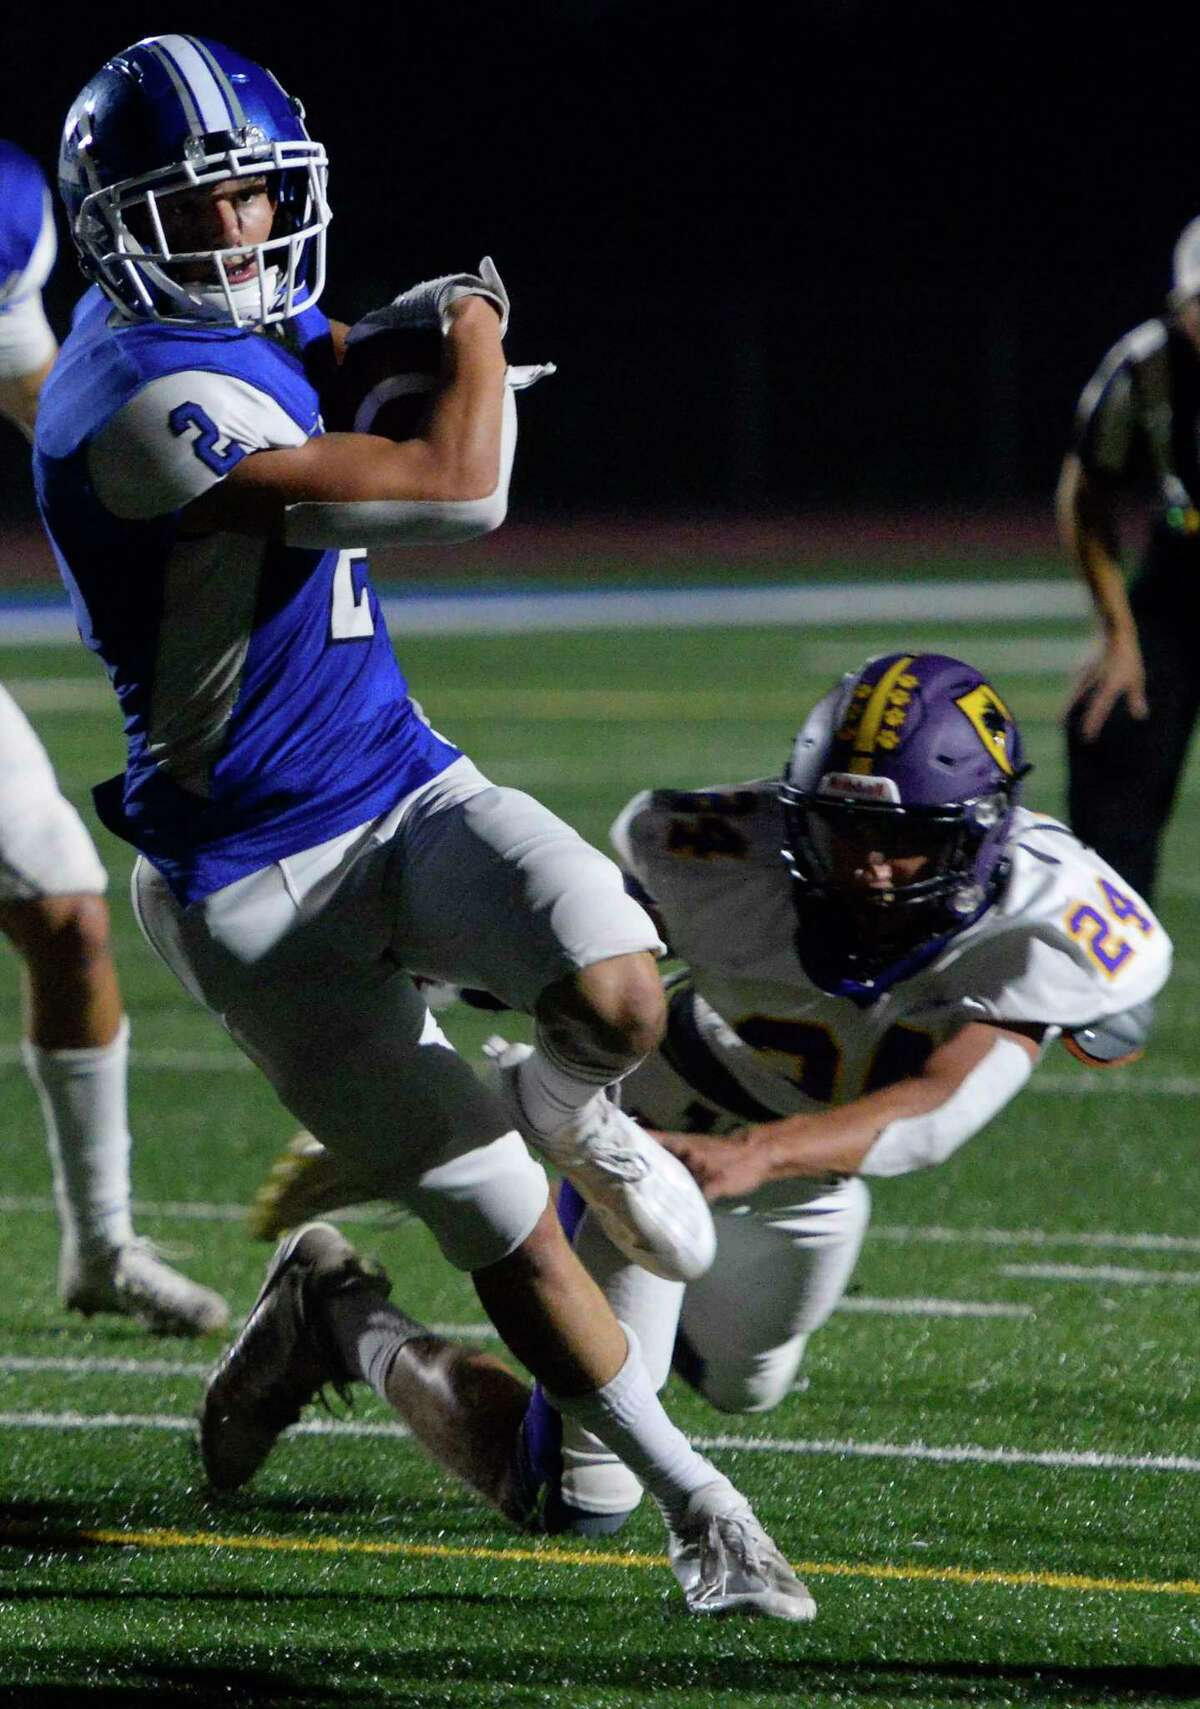 La Salle running back Dominick Nemier escapes a tackle against Ballston Spa. La Salle picked up a game against Burnt Hills after its original opponent, Albany, wasn't ready to start its season while waiting for vaccinations of its players to be completed.